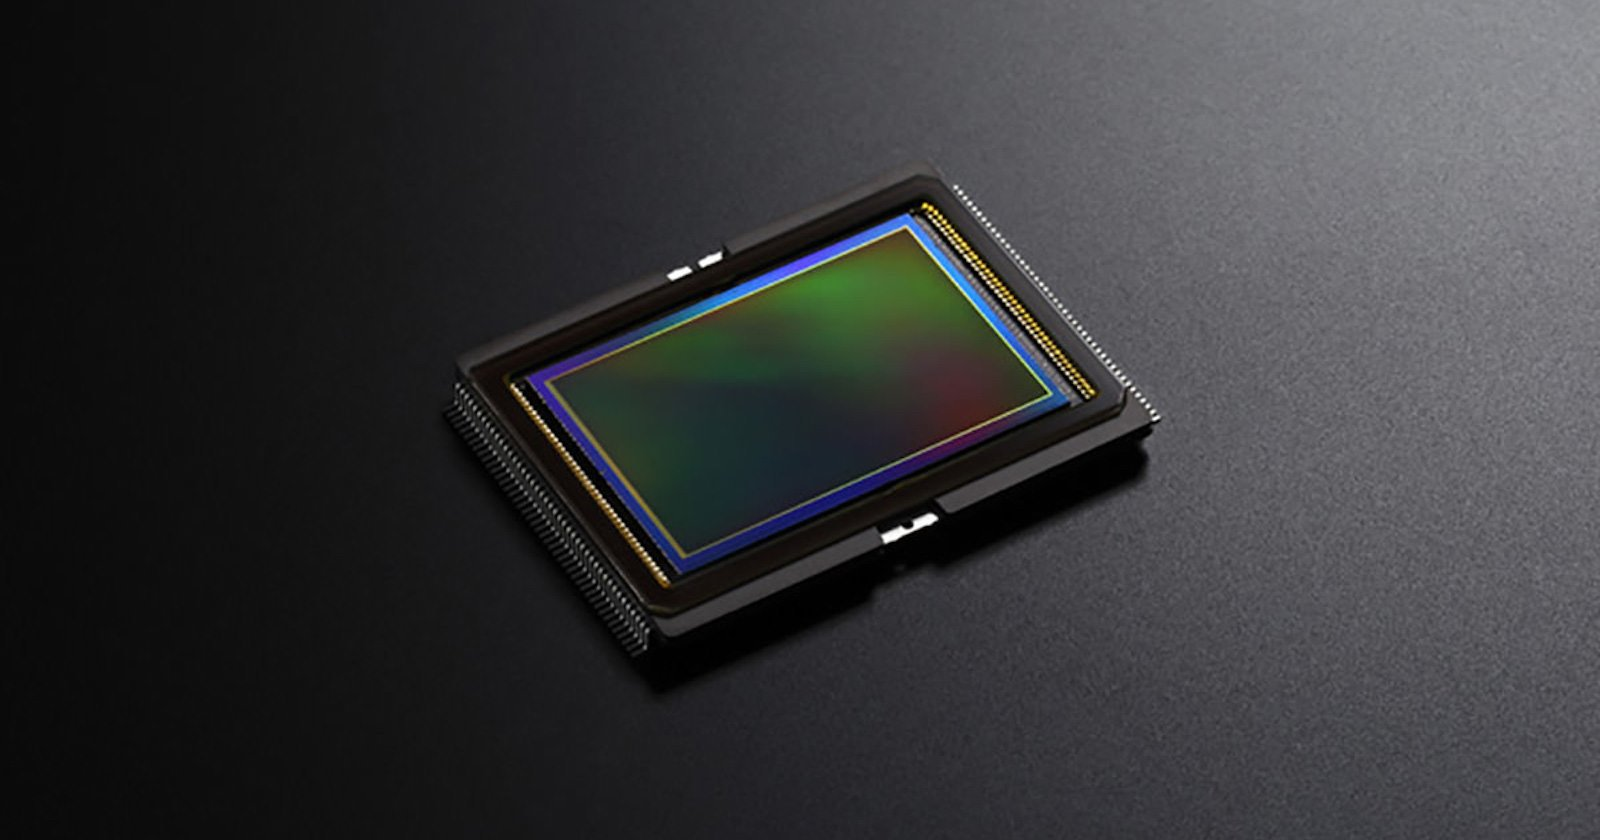 Sony Developed Two New Sensors: A 3-Layer Organic Chip and the 'World's First' All-PDAF Sensor